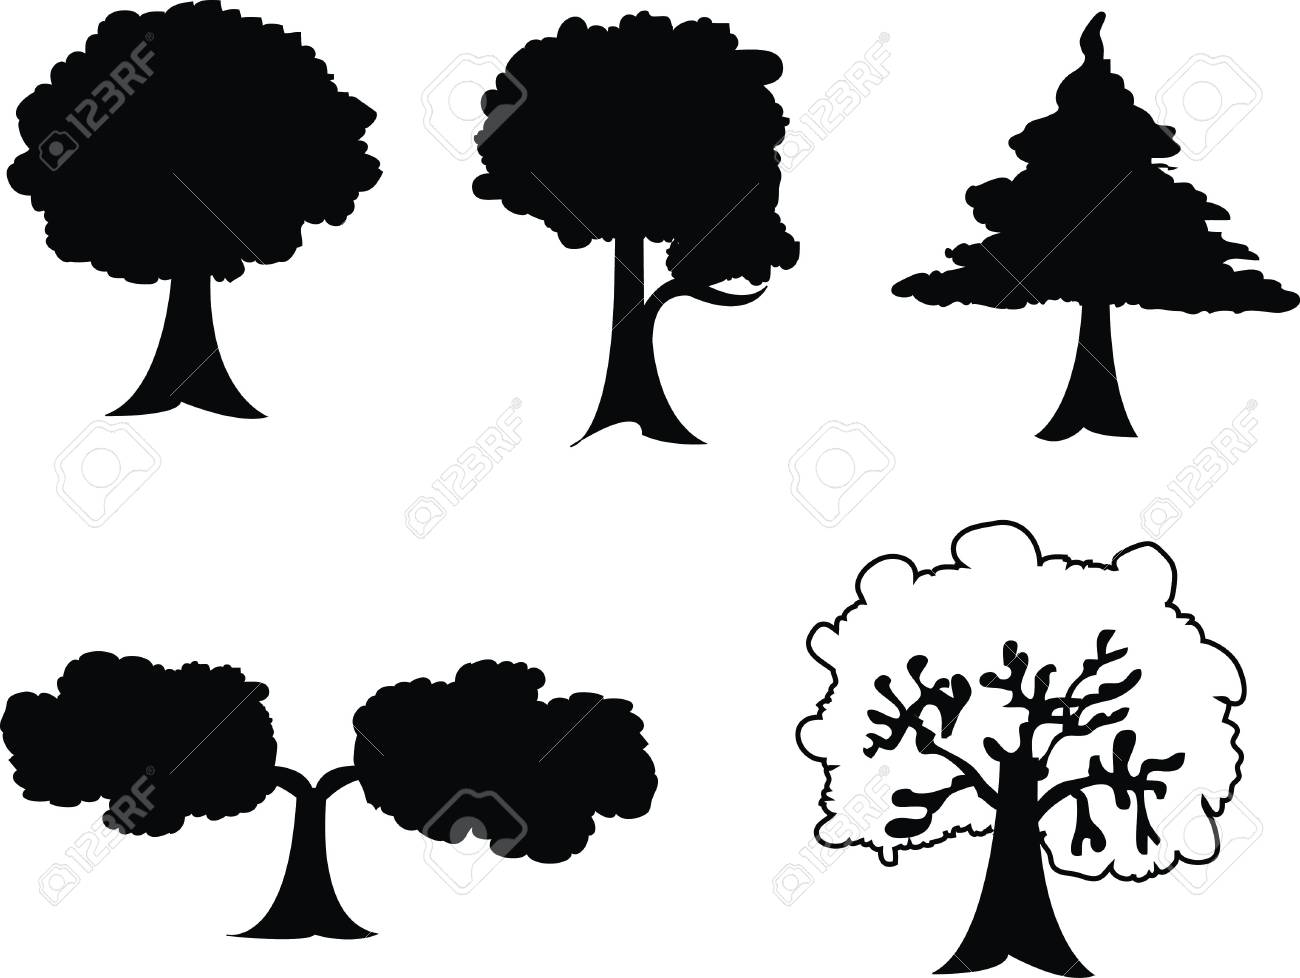 tree vector design, nature plants with green leafs Stock Vector - 13526857